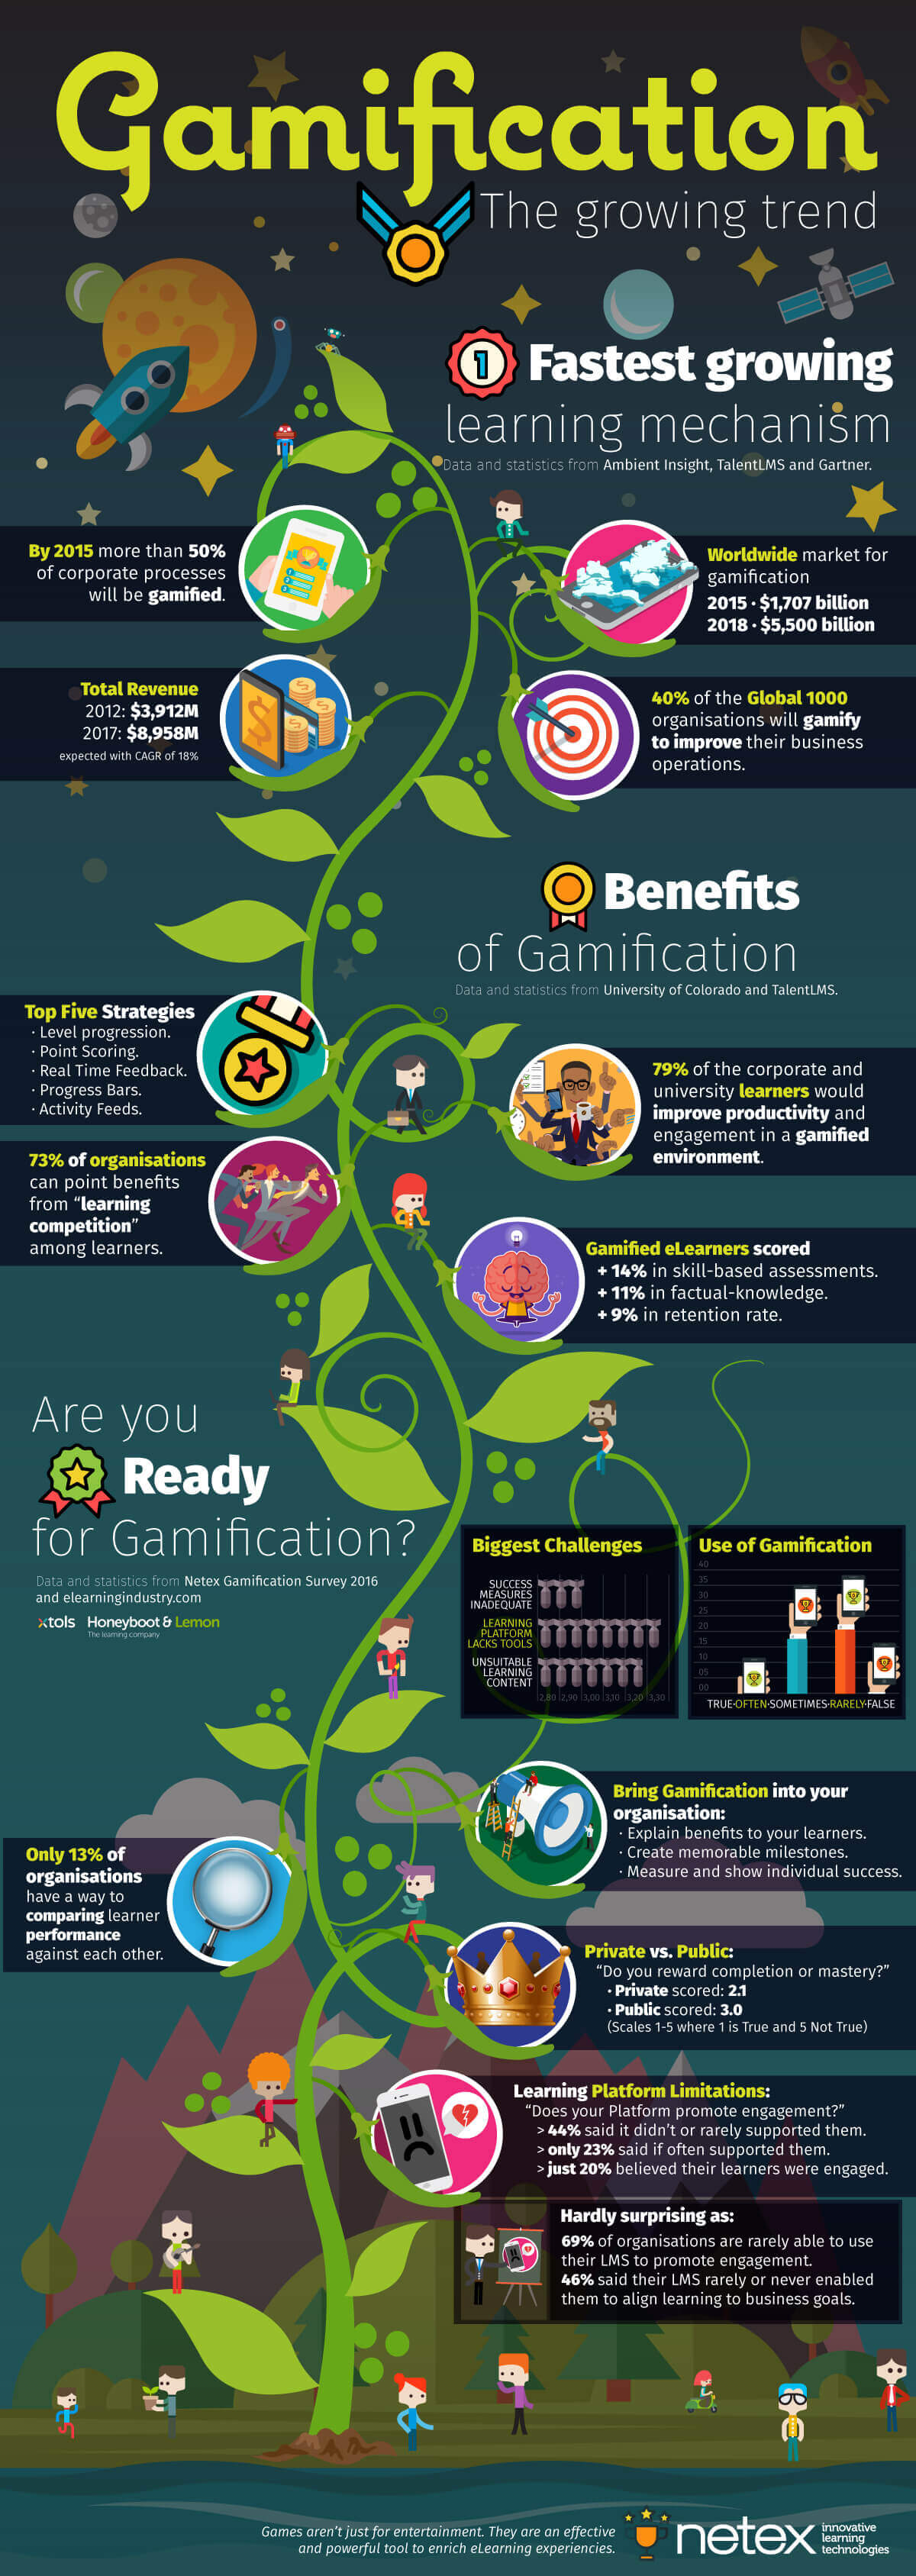 Netex 2016 Gamification Infographic